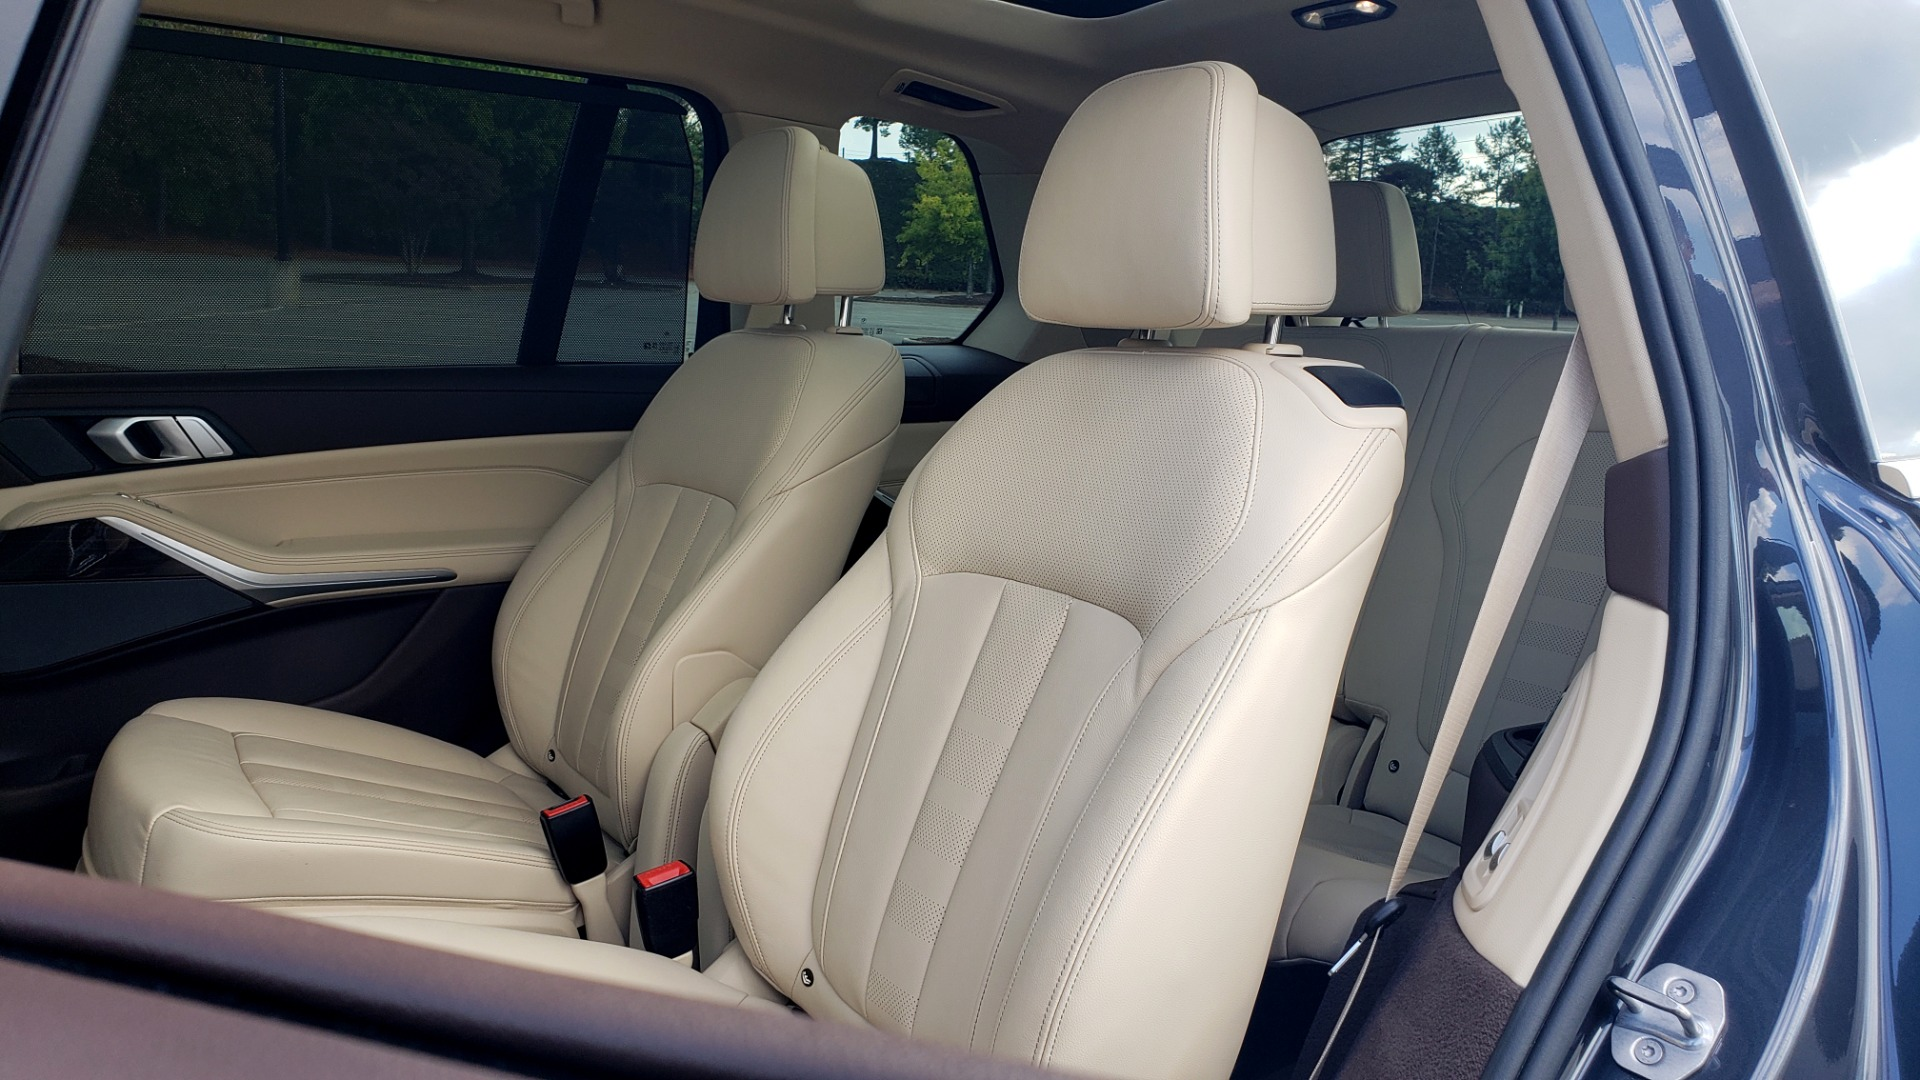 Used 2019 BMW X7 XDRIVE40I PREMIUM / LUXURY / COLD WEATHER / PARK ASST / PANORAMIC SKY / TOW for sale $75,999 at Formula Imports in Charlotte NC 28227 70